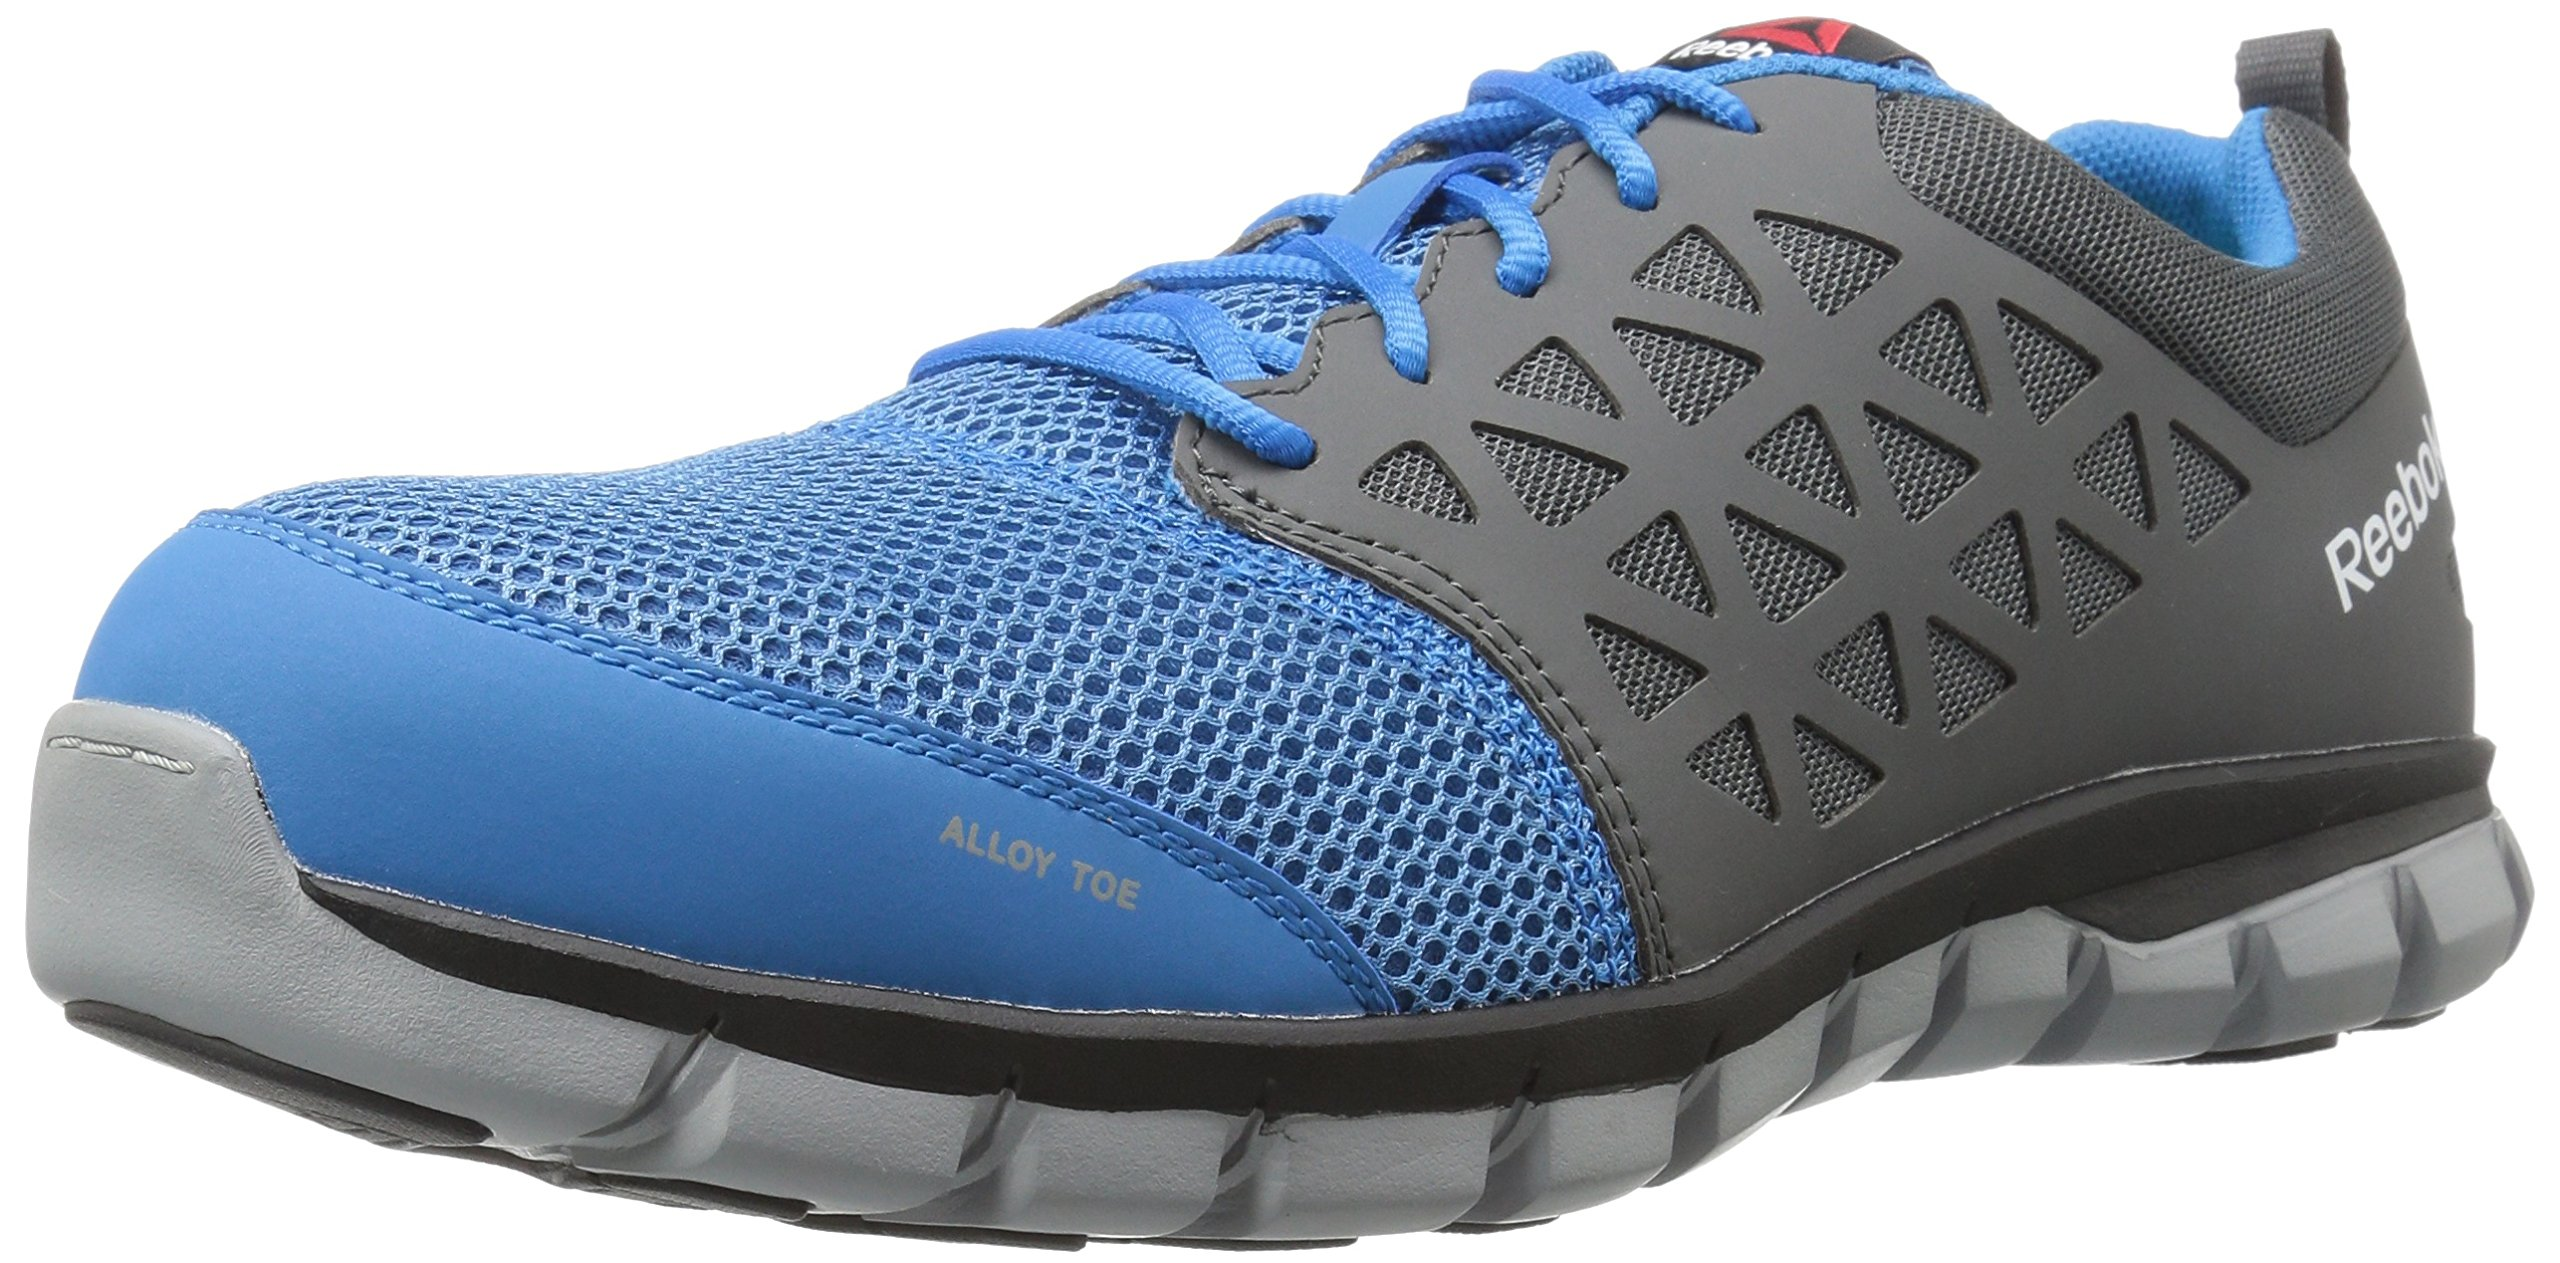 Reebok Work Men's Sublite Cushion Work RB4040 Industrial and Construction Shoe, Blue/Grey, 14 M US by Reebok Work